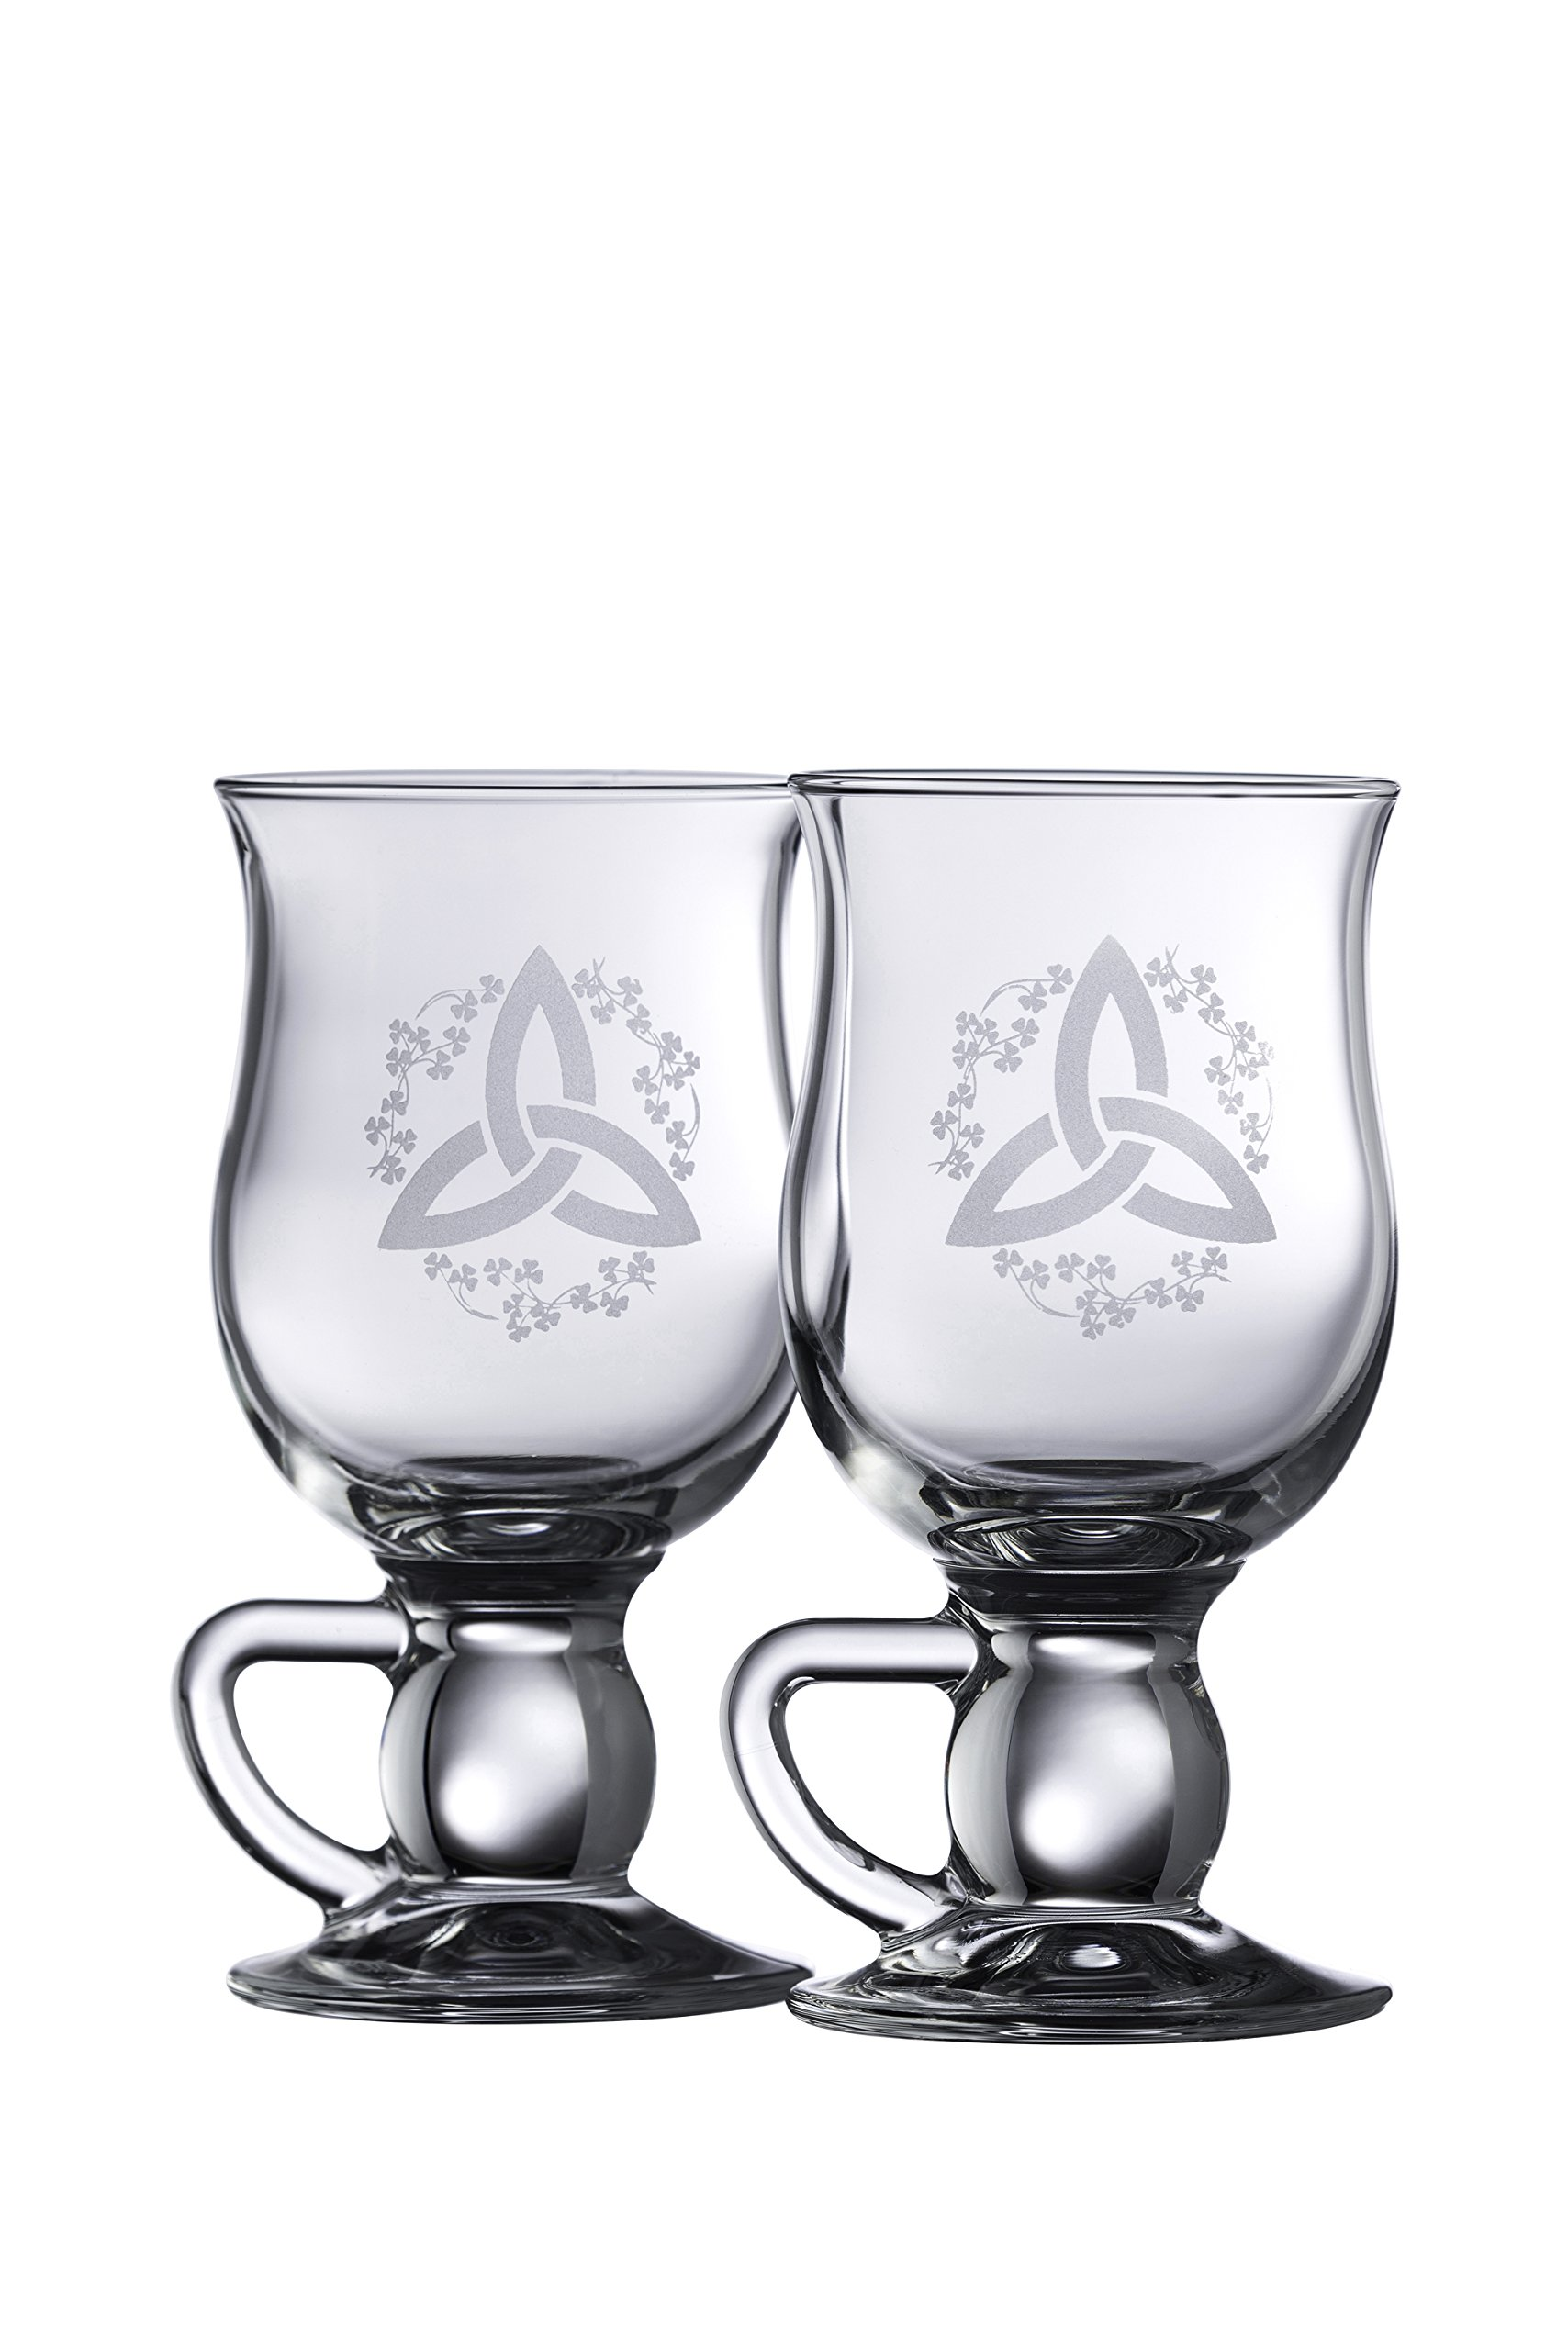 Galway Crystal Trinity Knot Shamrock Latte (1 Pair), Clear by Galway Crystal